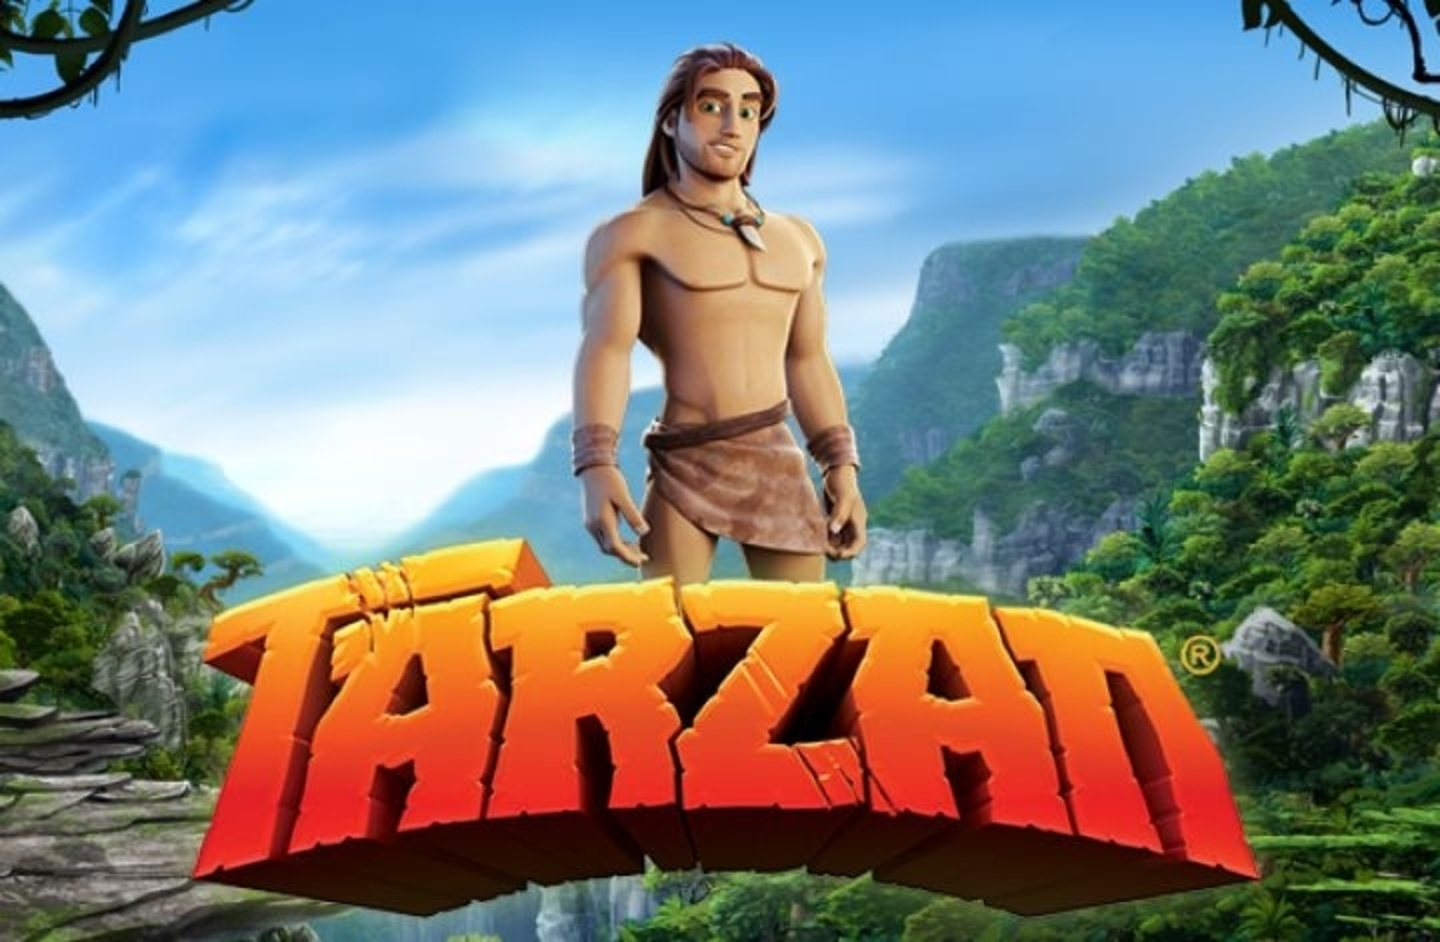 The Tarzan Online Slot Demo Game by Microgaming